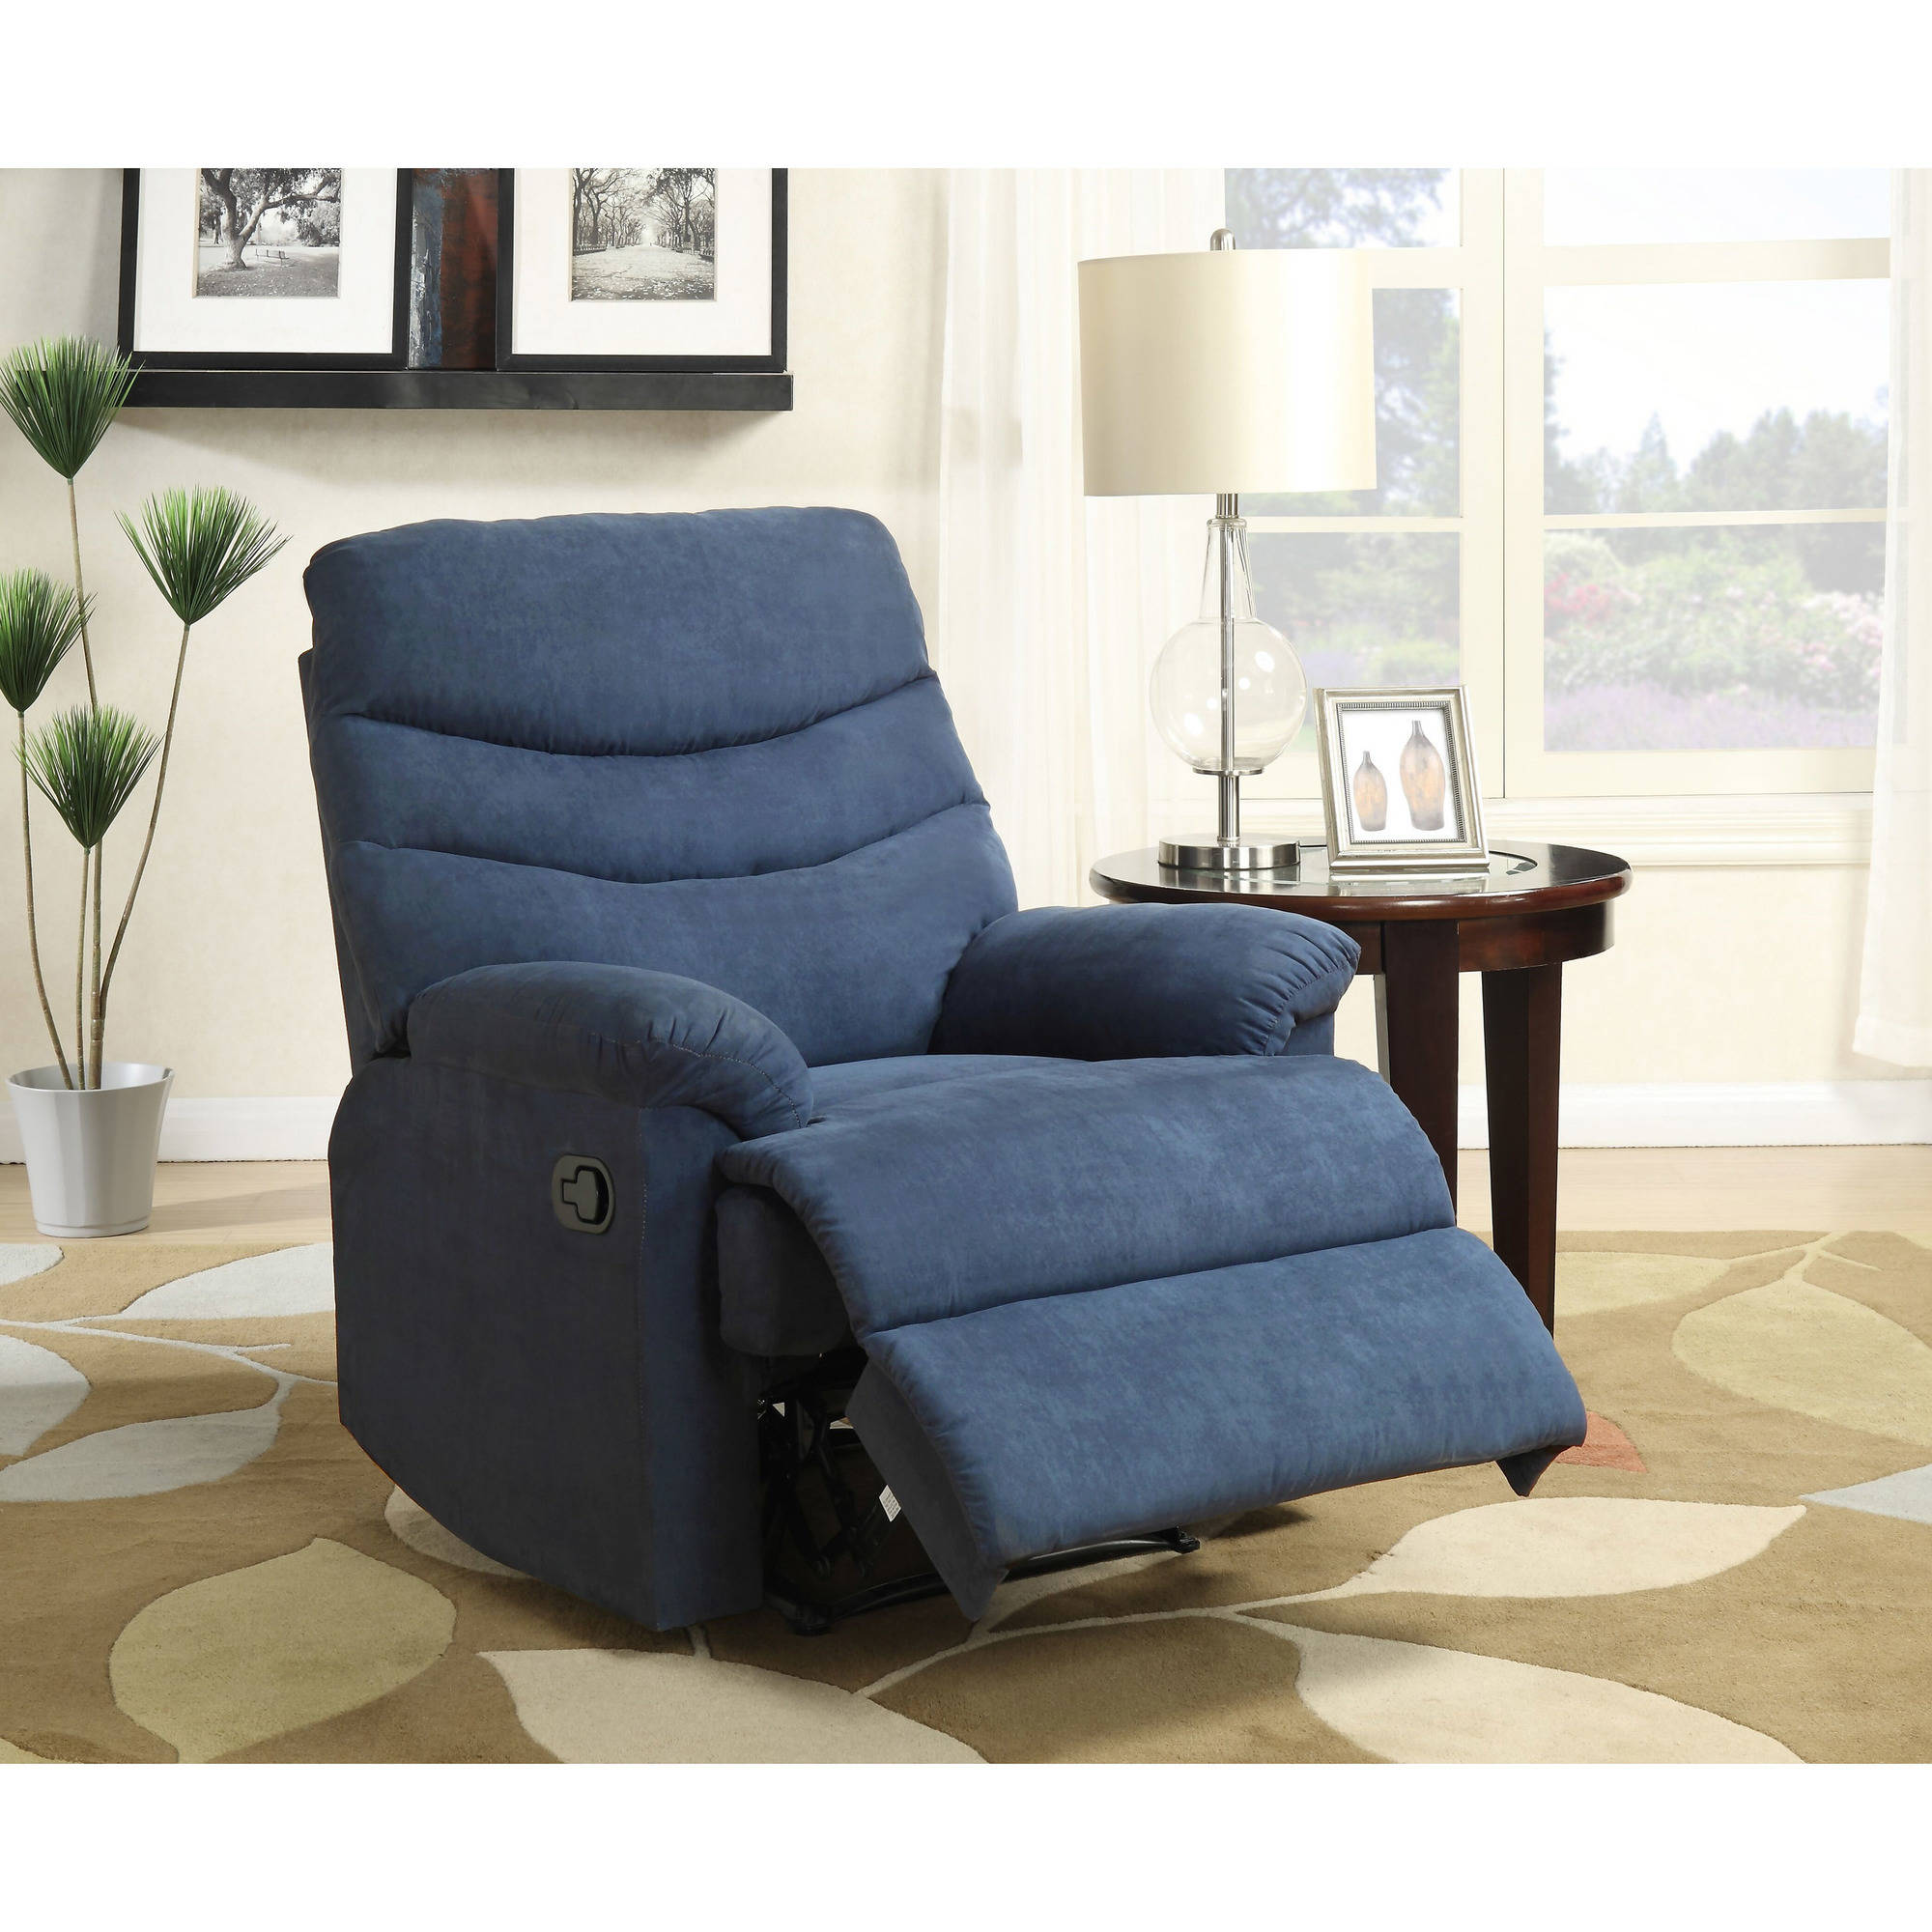 Nathaniel Home Anthony Recliner, Blue